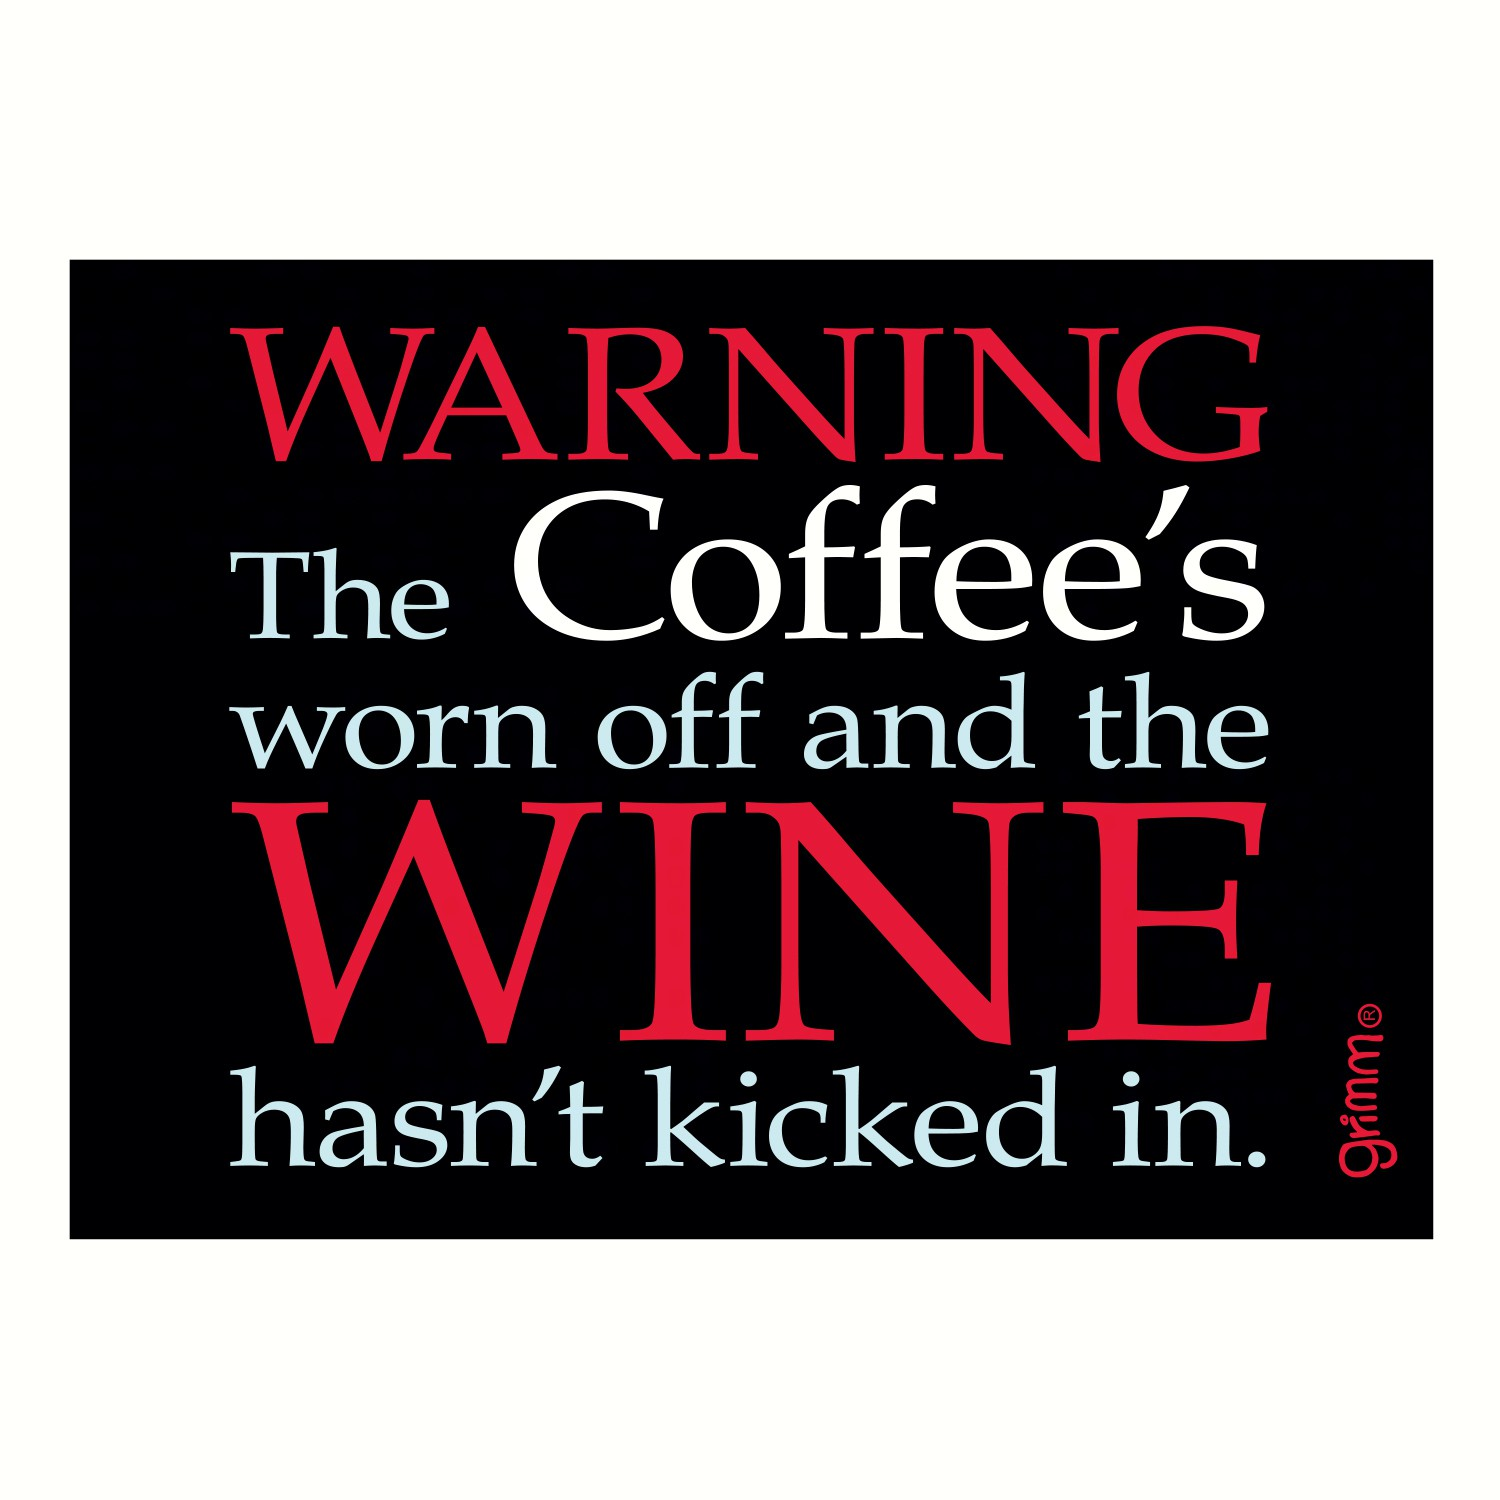 Magnet, Humorous Saying, Warning The Coffee's worn off and the wine hasn't kicked in